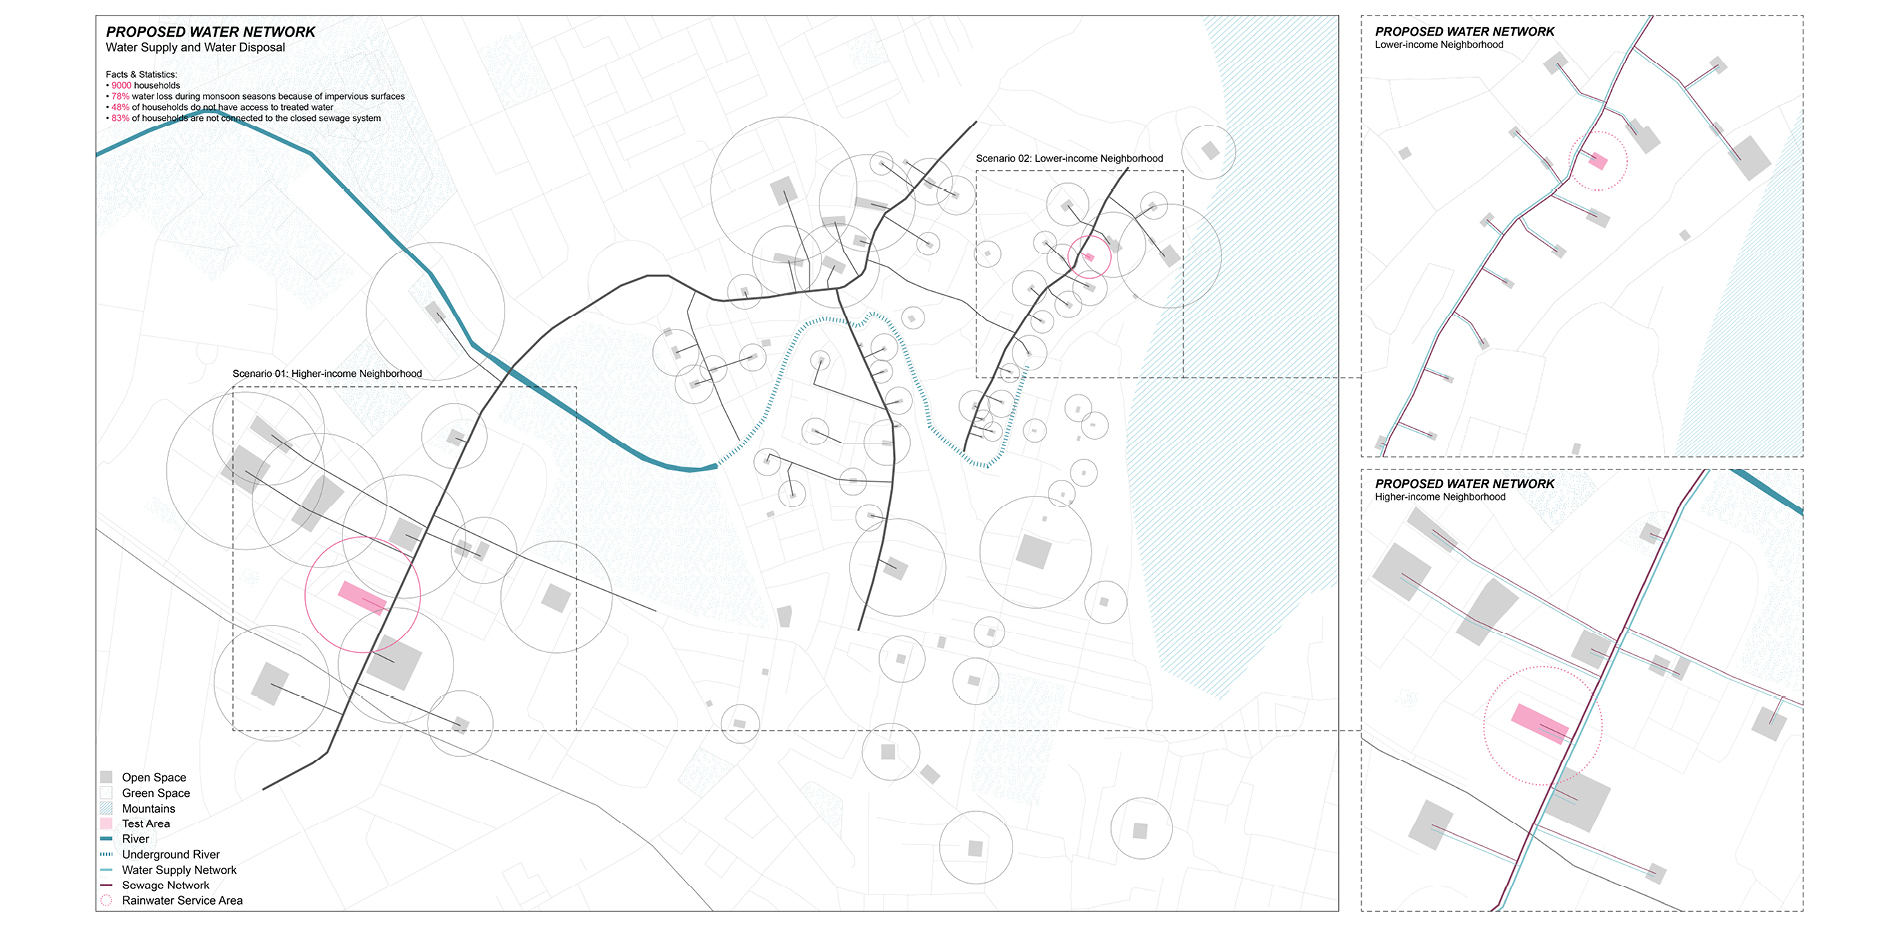 Proposed Water Network